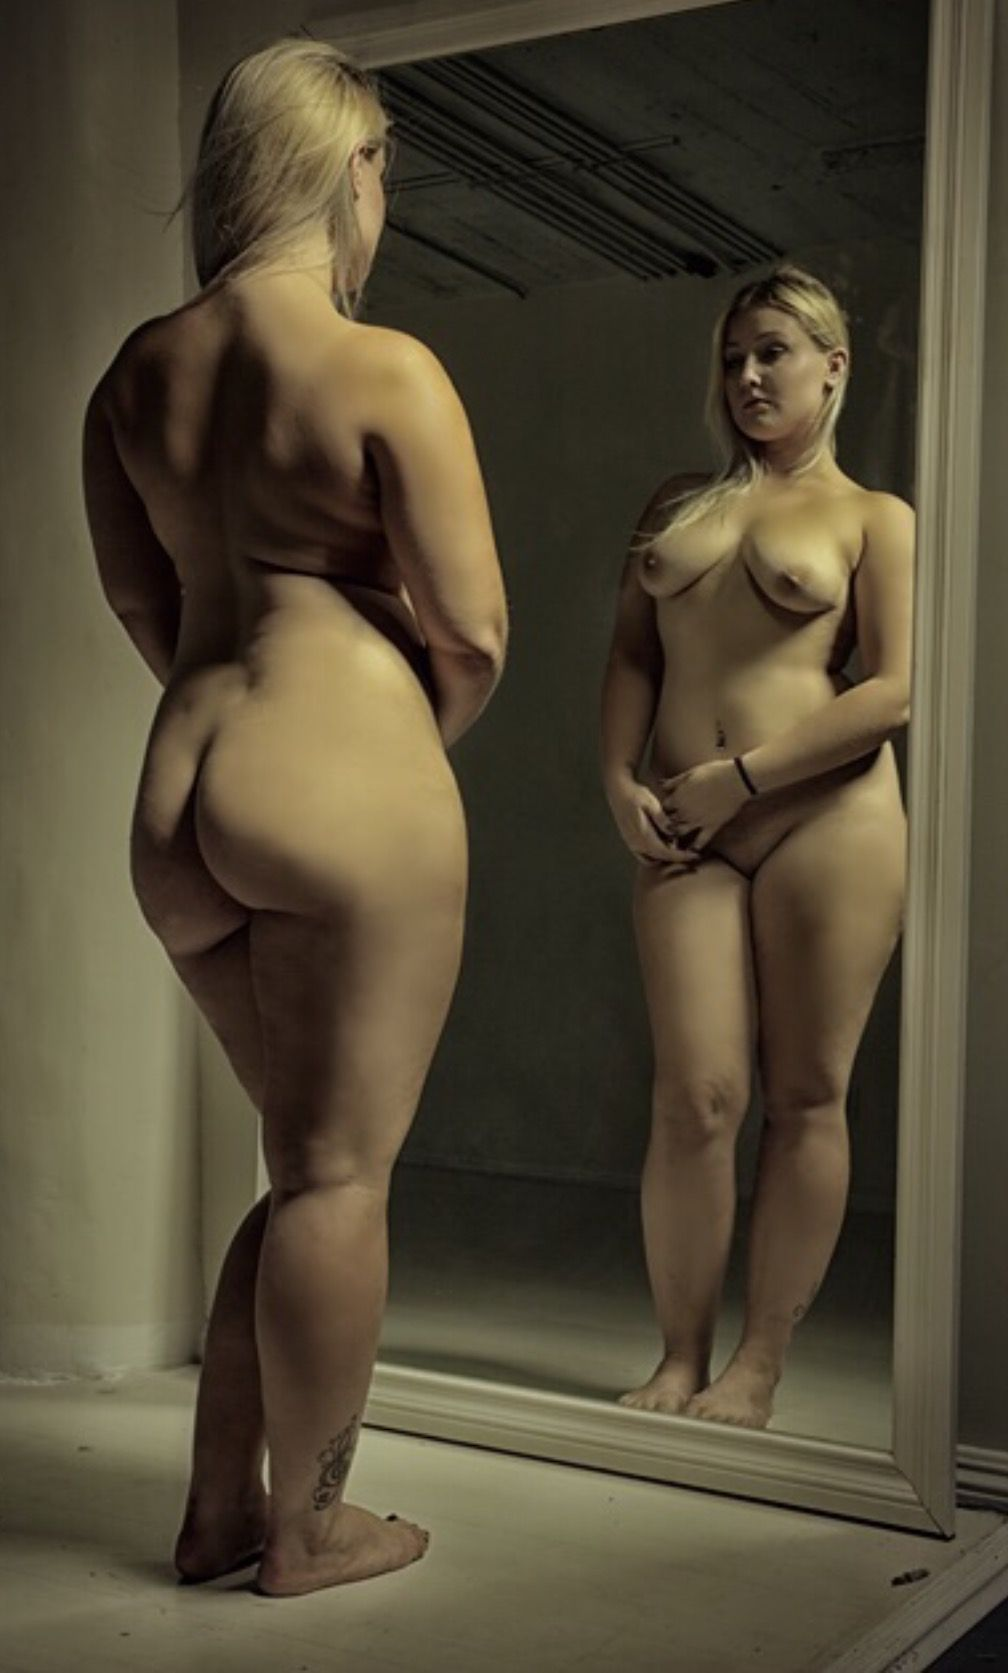 Plump nude pictures